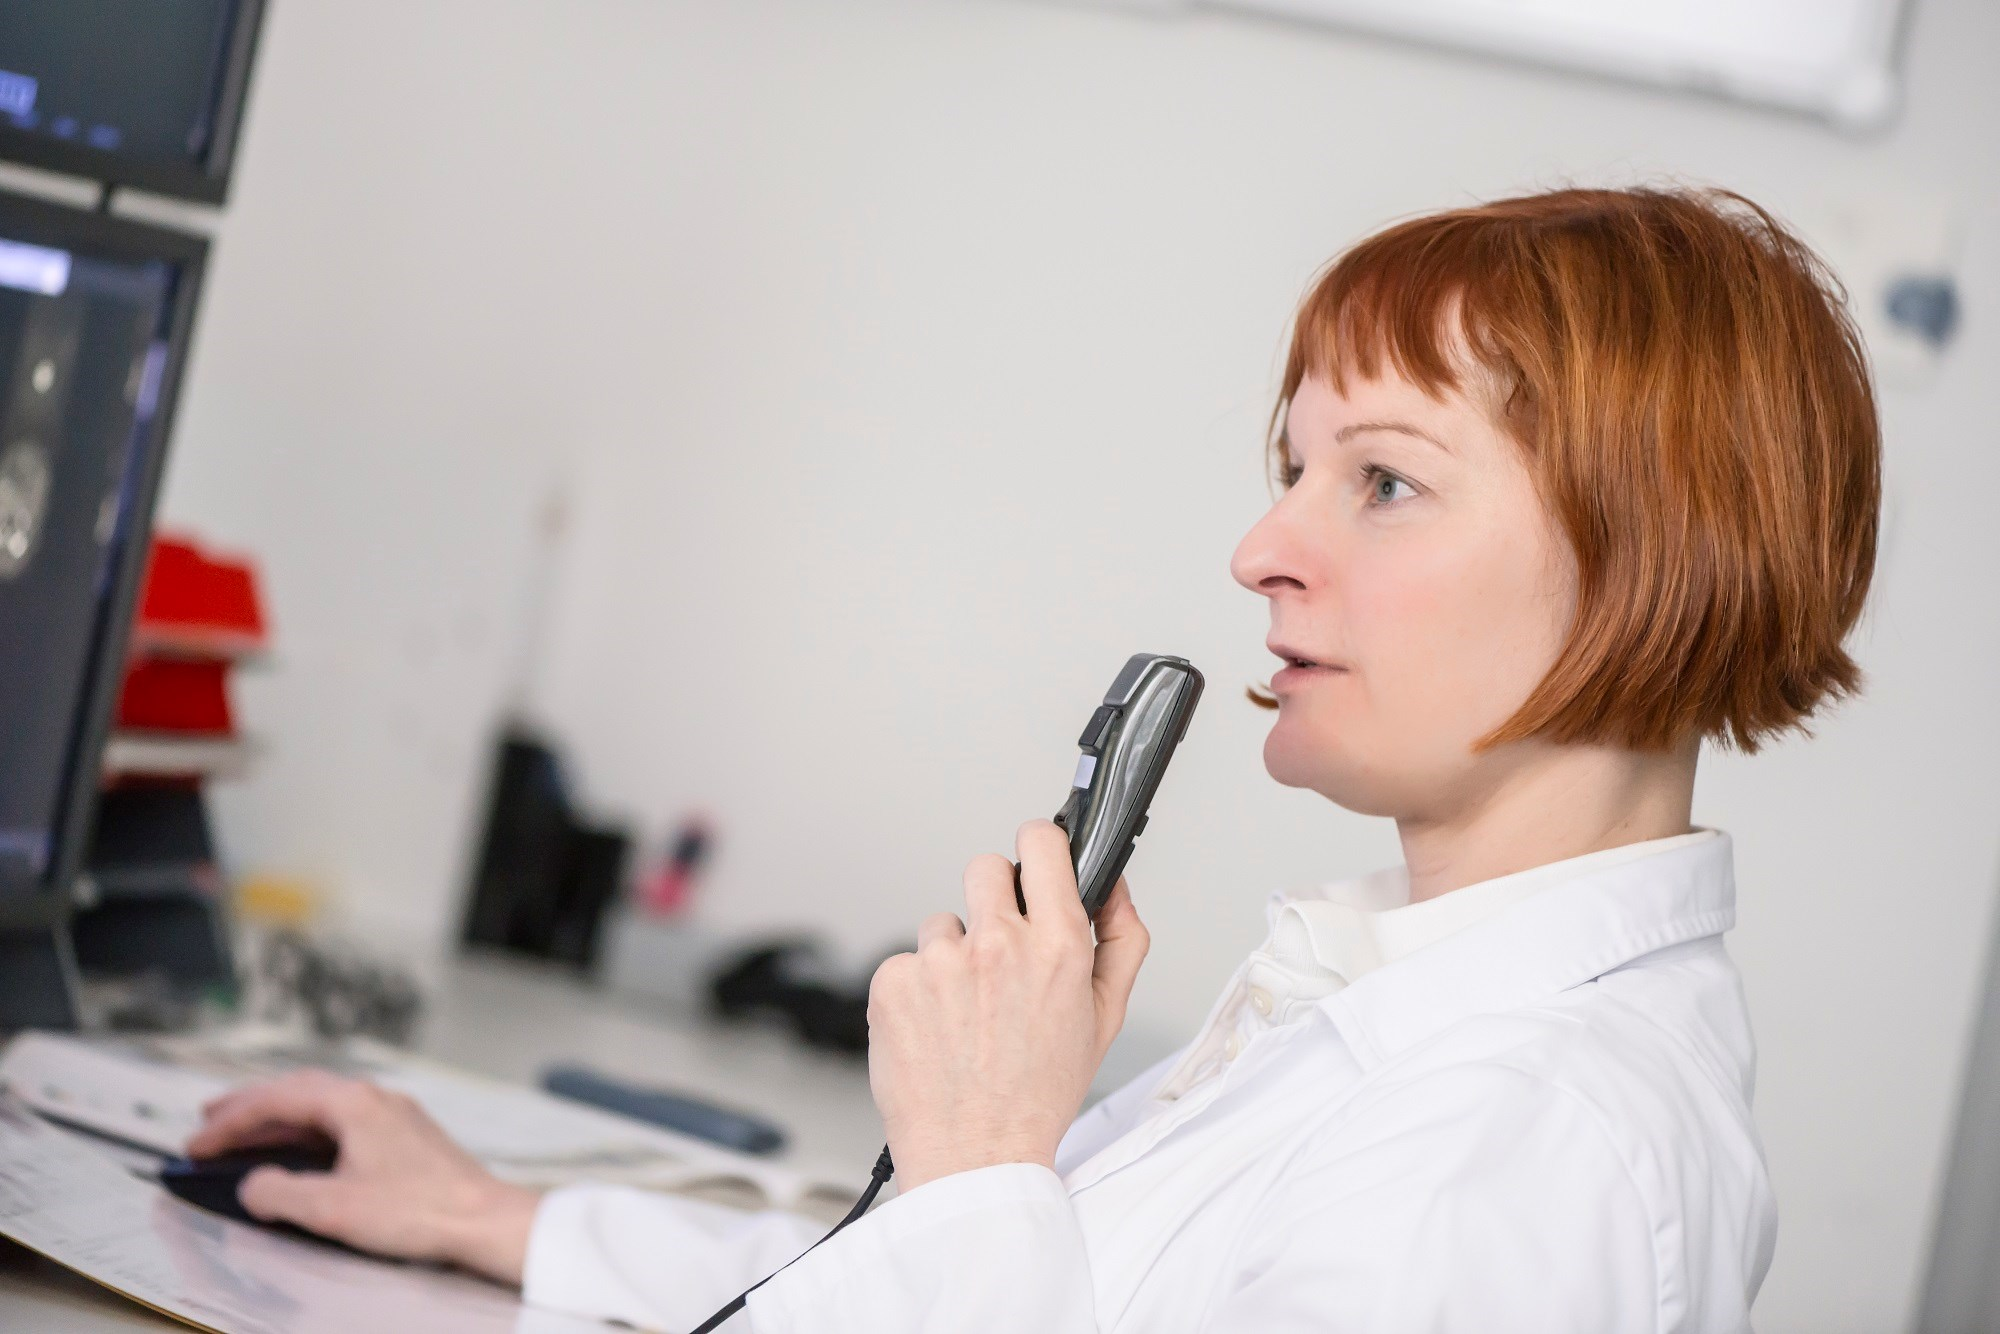 Some Clinicians, Patients Record Clinic Visits for Patient Use